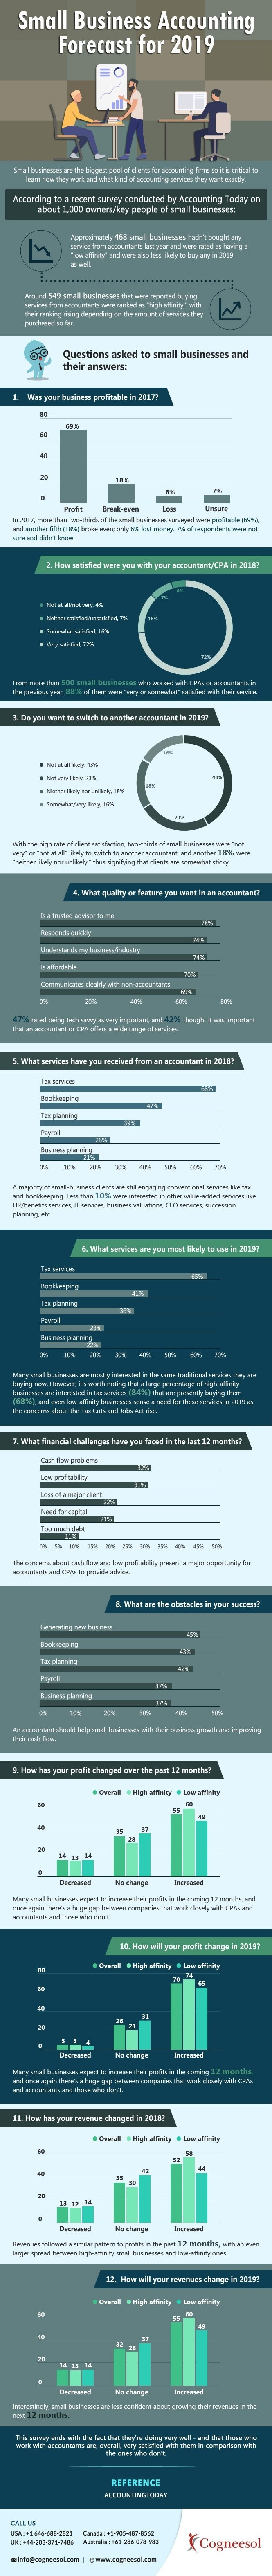 Small Business Accounting Forecast for 2019 #infographic